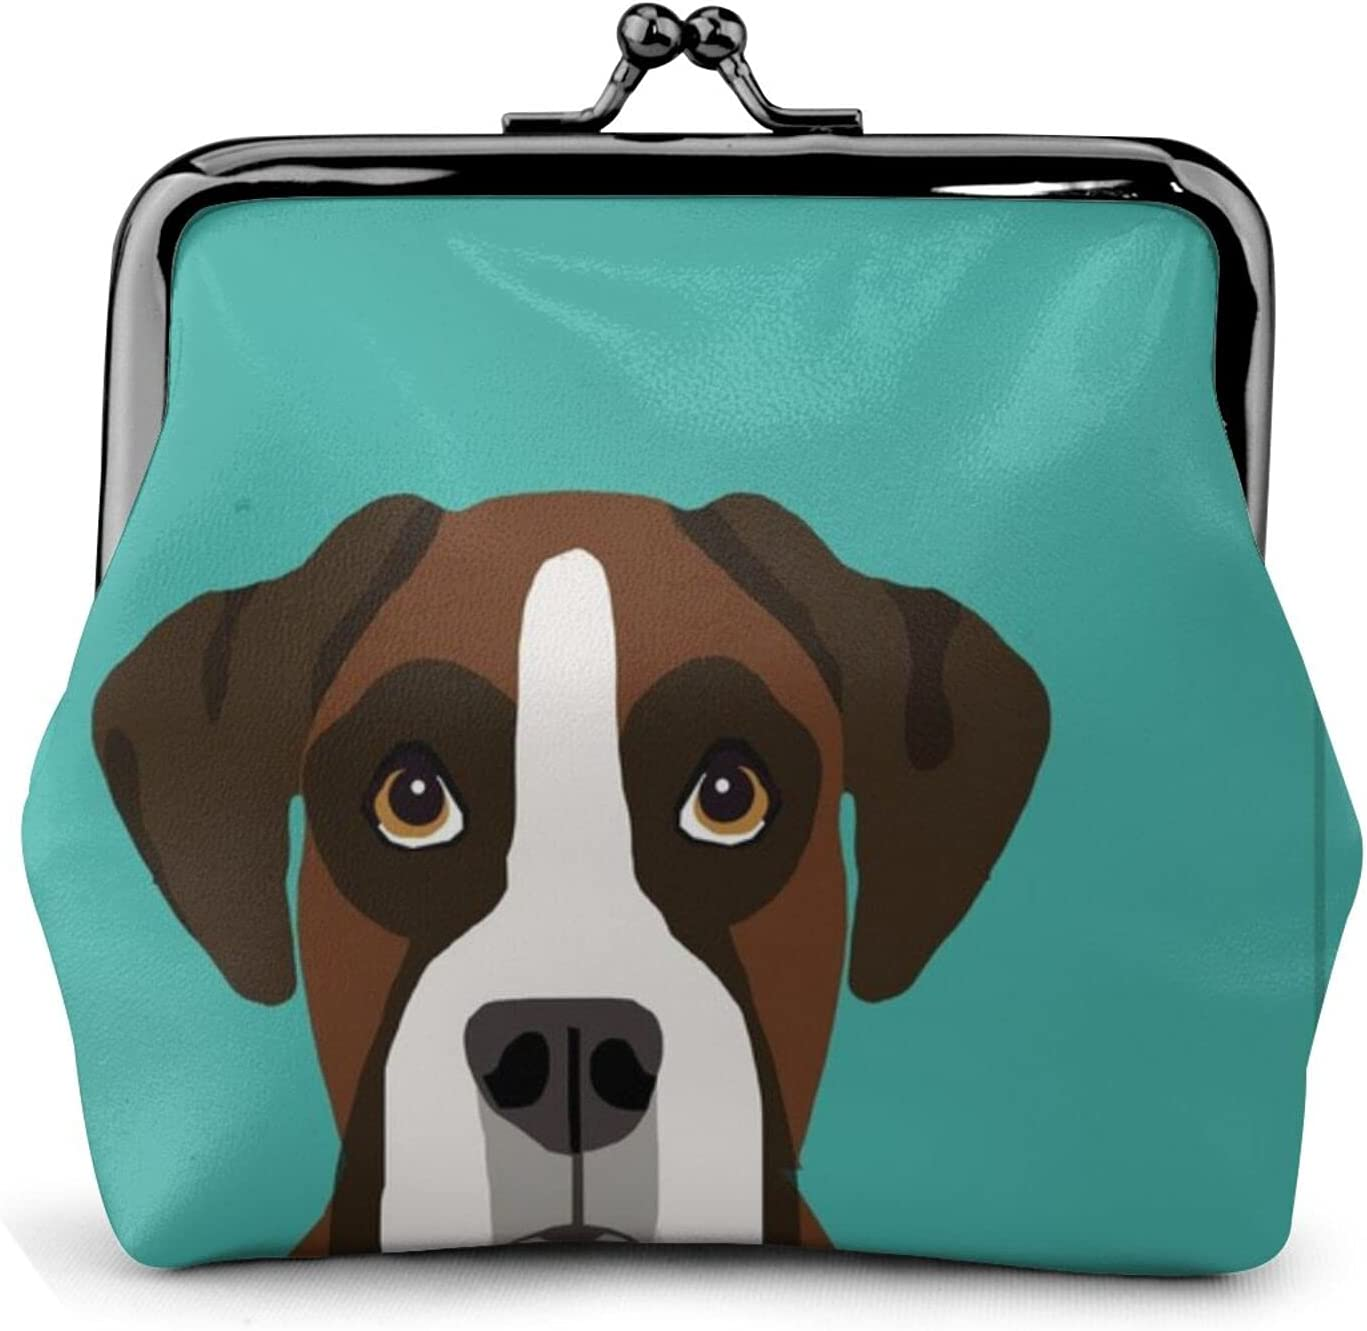 Boxer Dog With 1157 Leather Coin Purse Kiss Lock Change Pouch Vintage Clasp Closure Buckle Wallet Small Women Gift